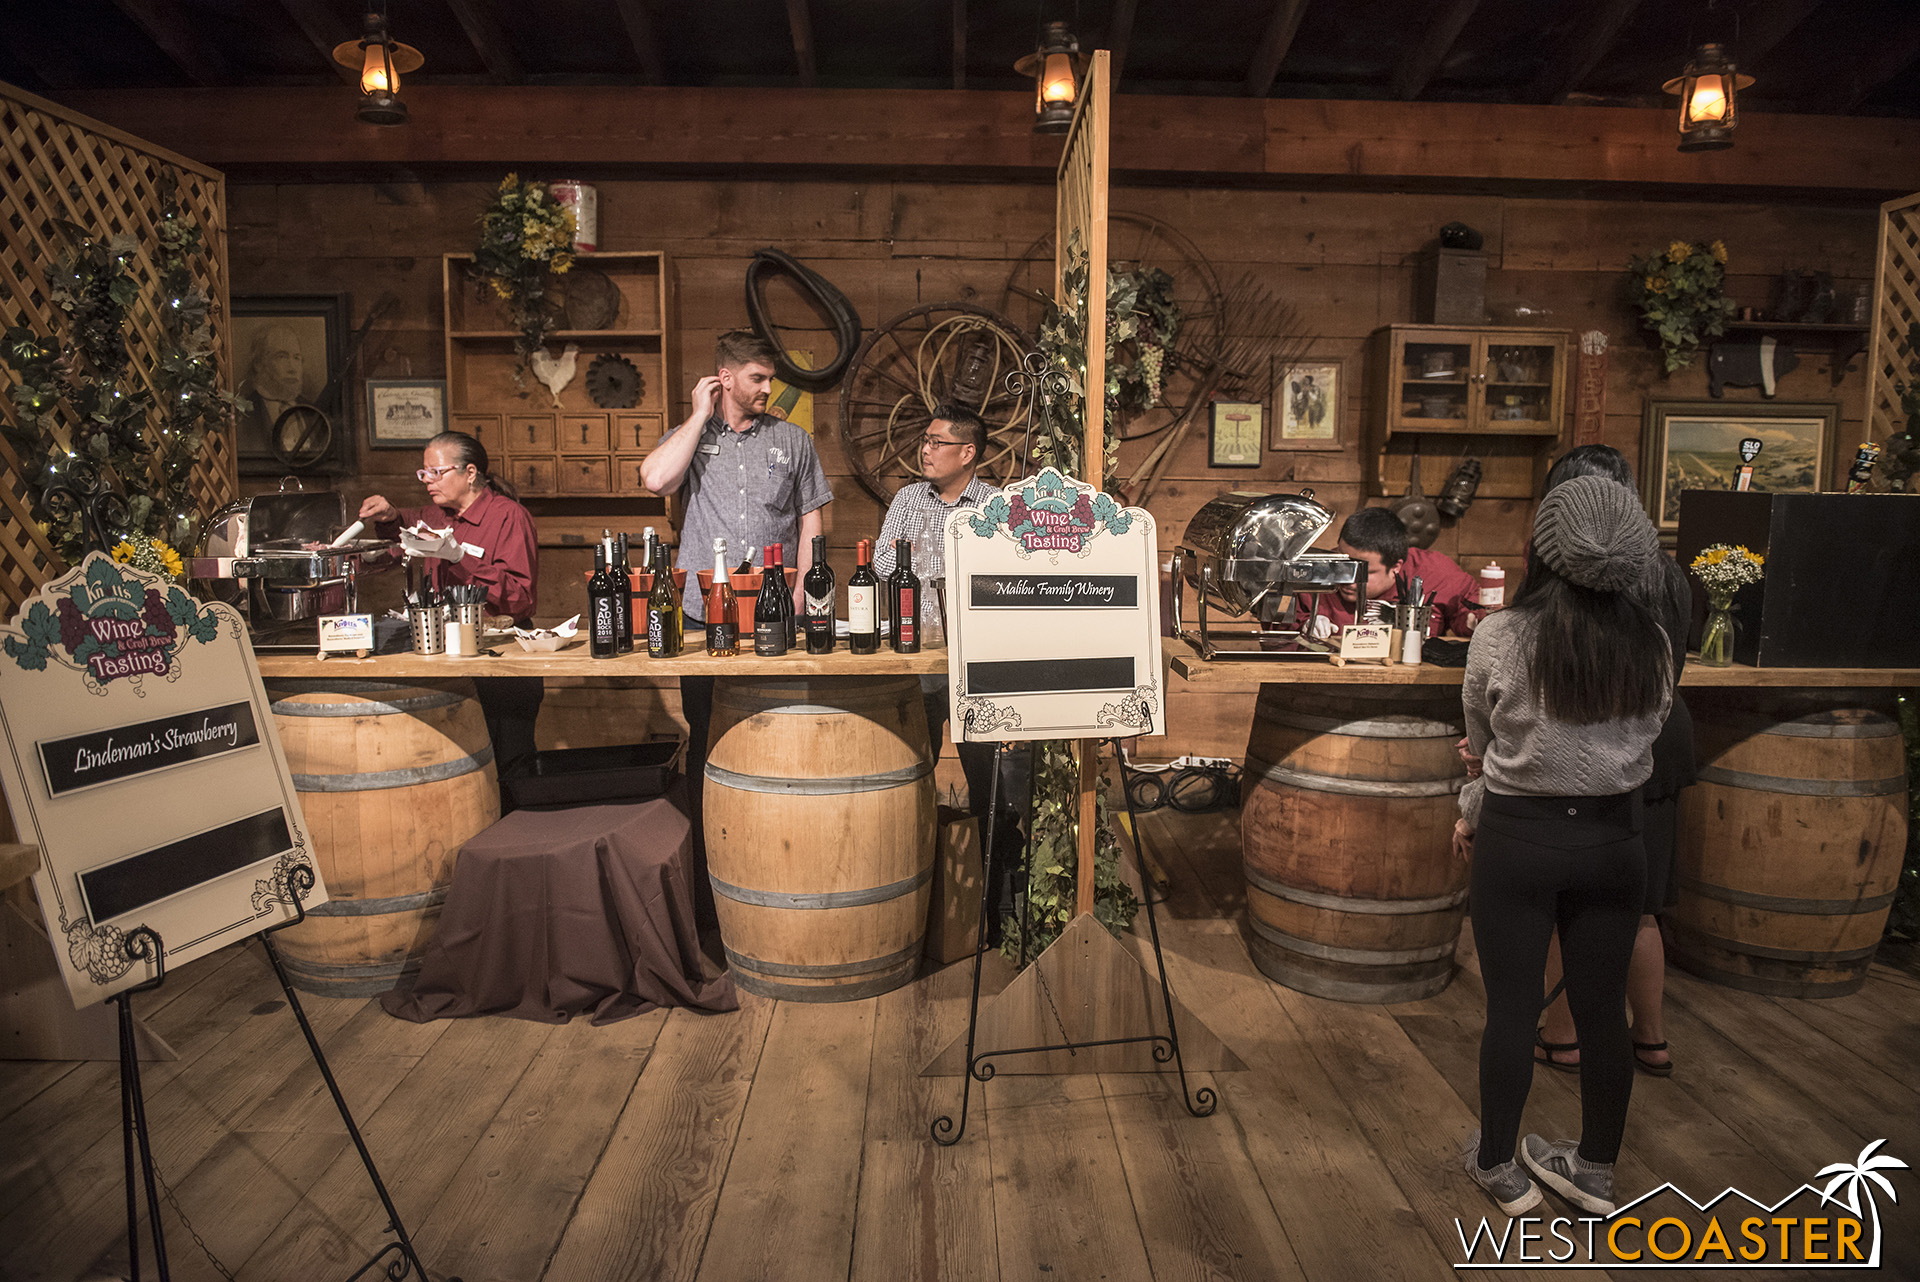 There will be once again a series of wine and beer booths inside the Wilderness Dance Hall for guests who purchase a tasting card.